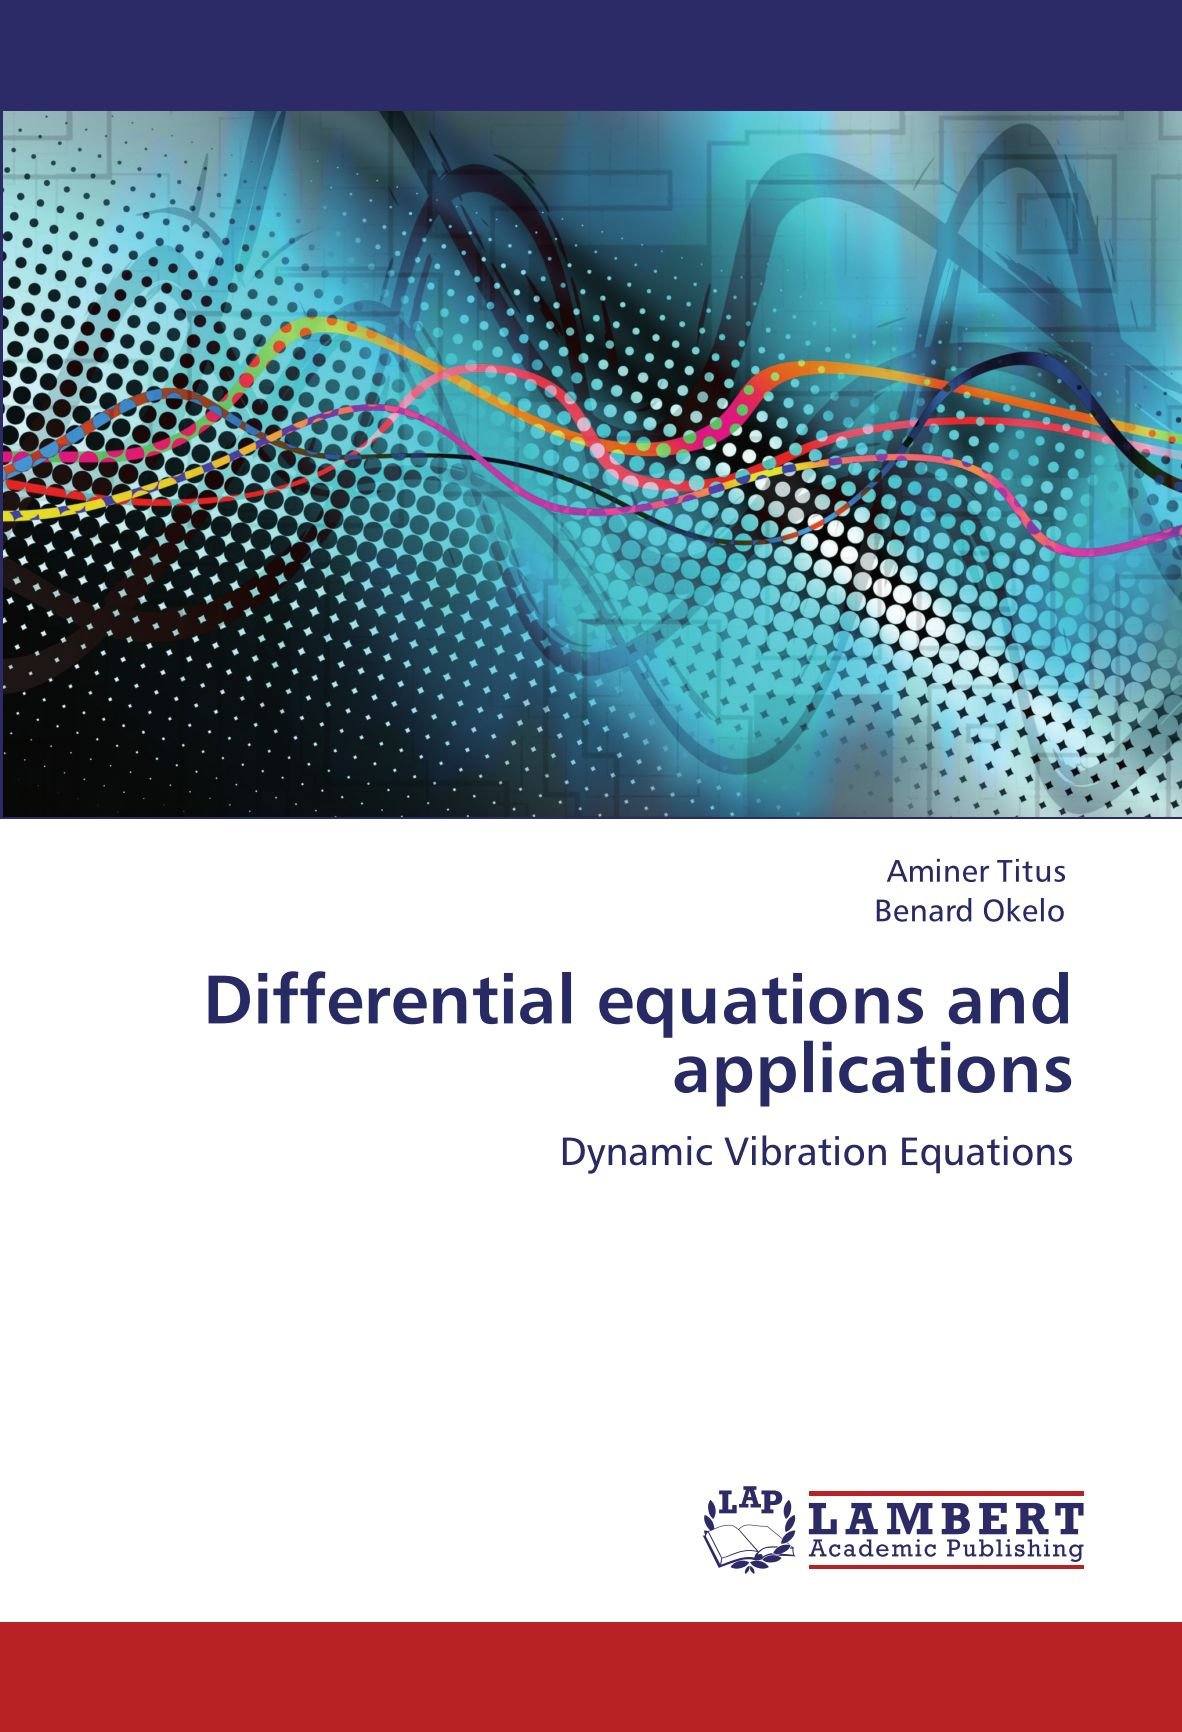 Differential equations and applications: Dynamic Vibration Equations